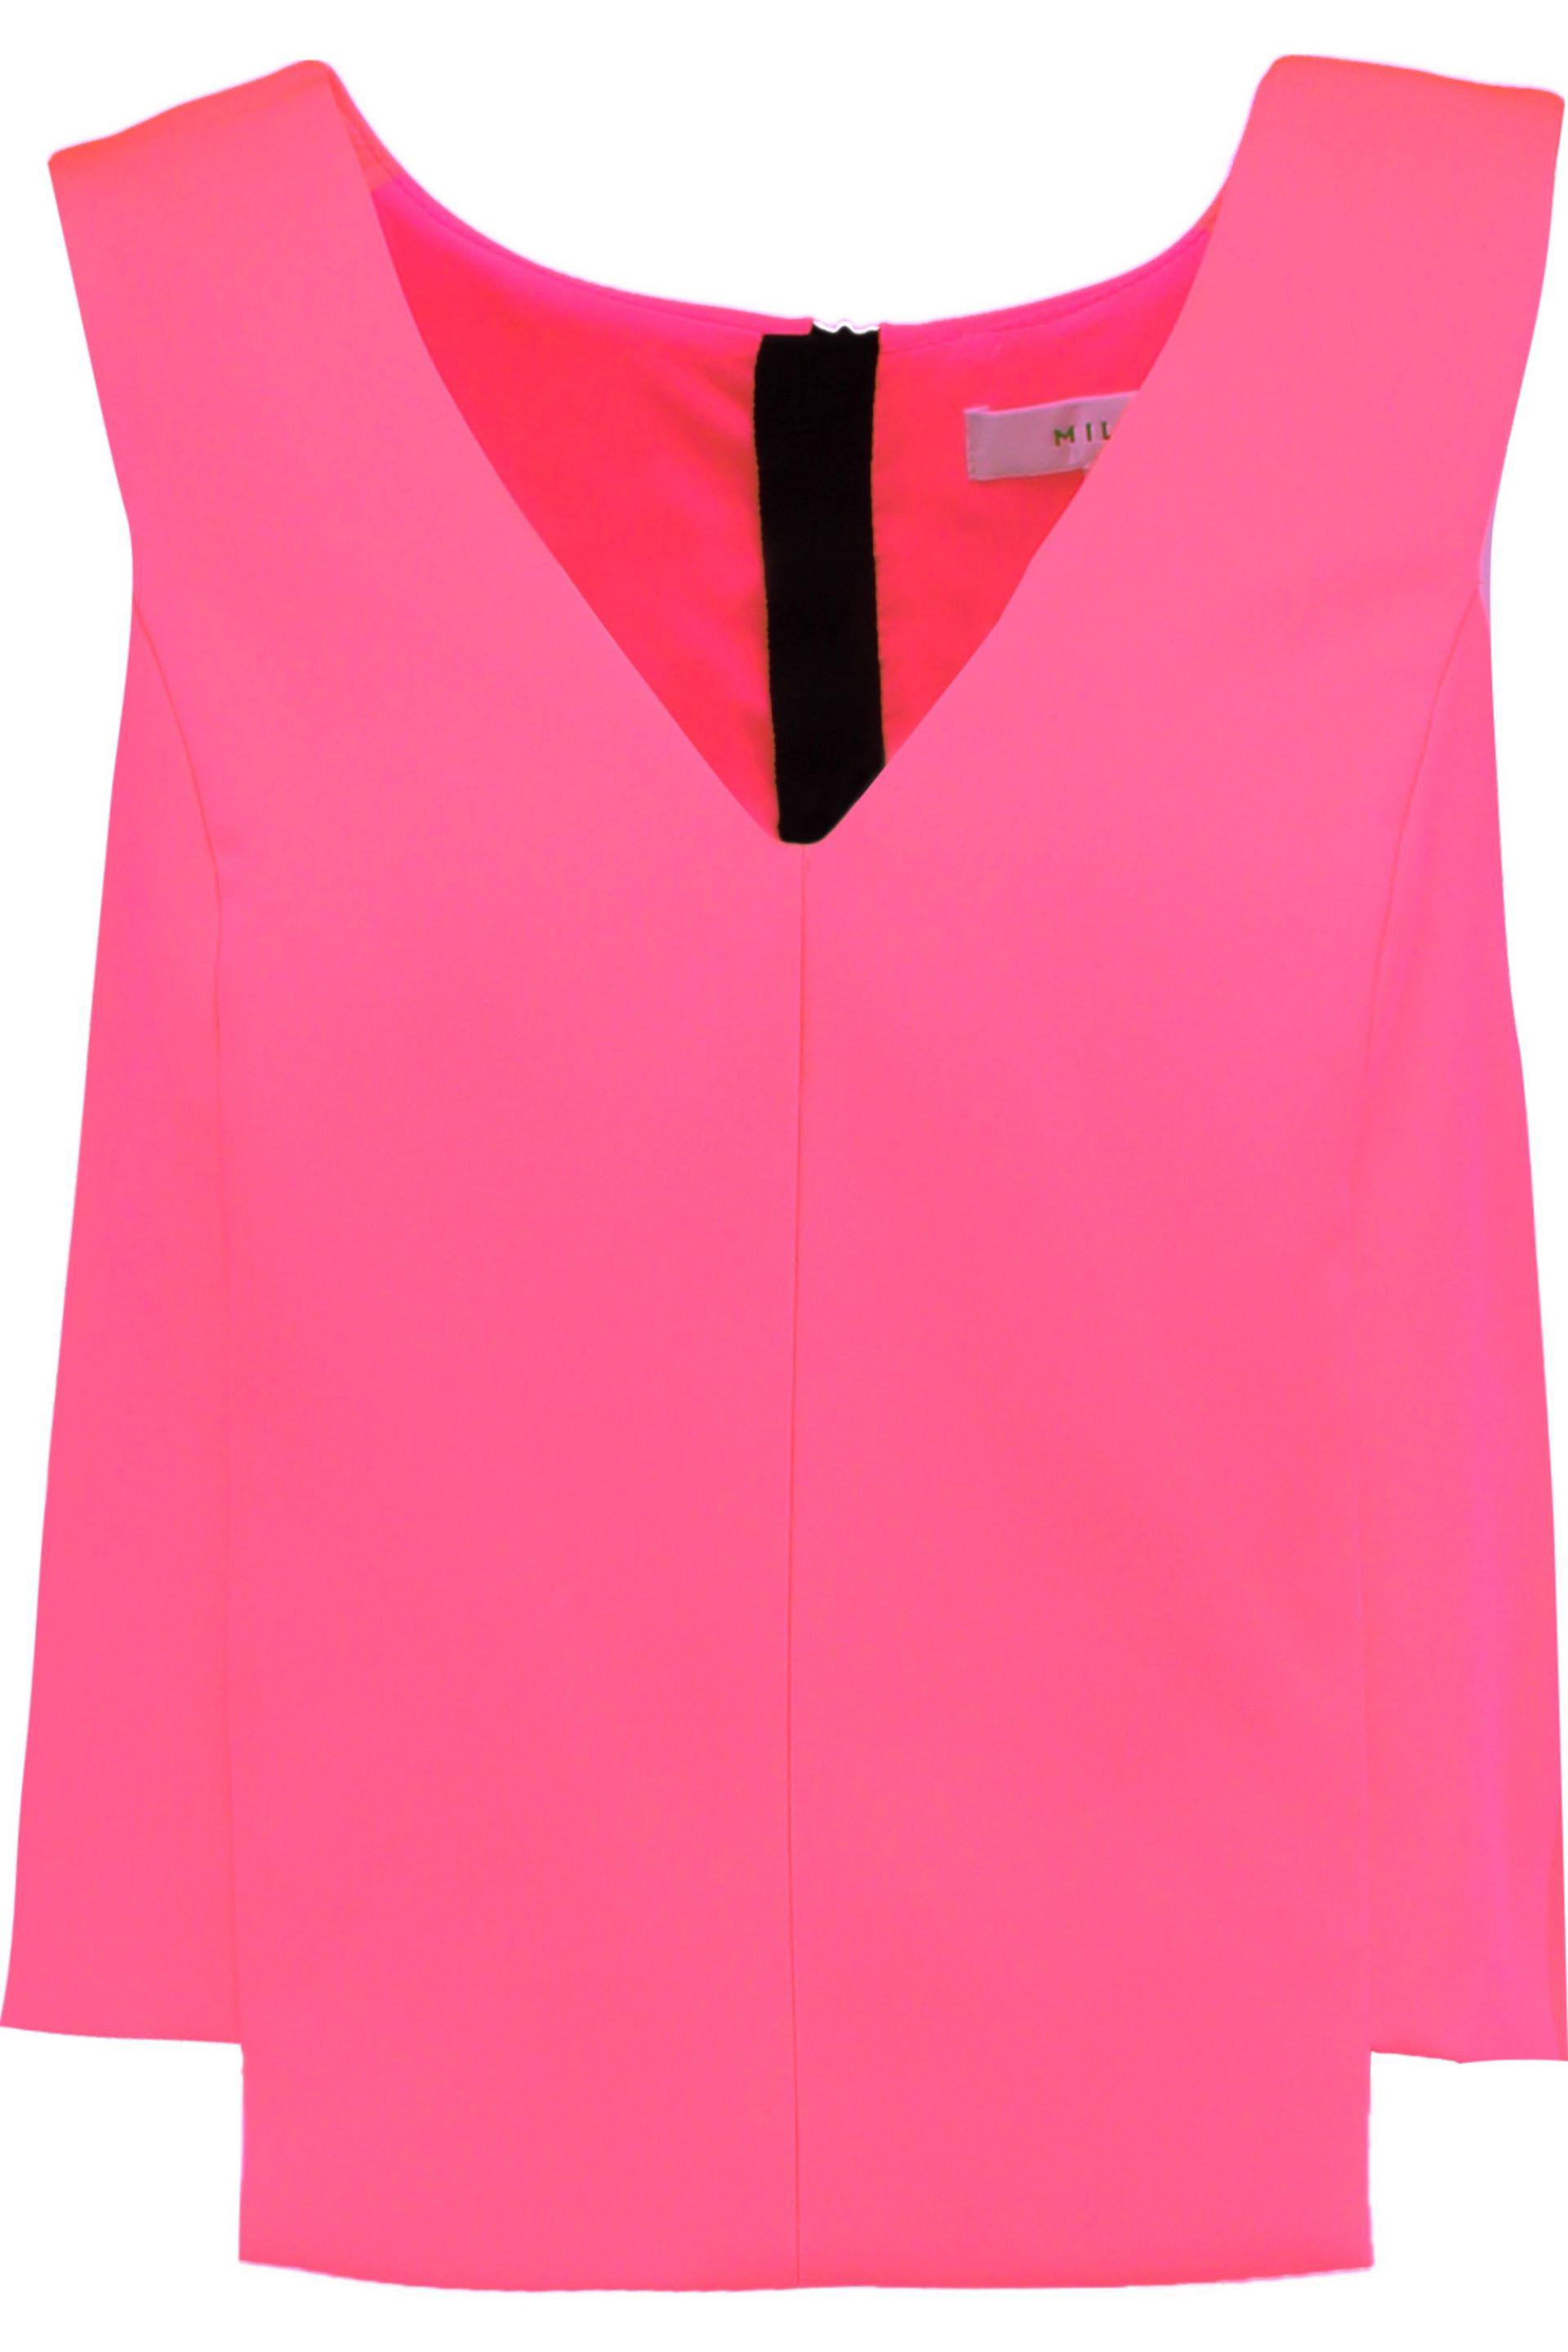 MILLY. Women's Pink Cropped Stretch-cady Top